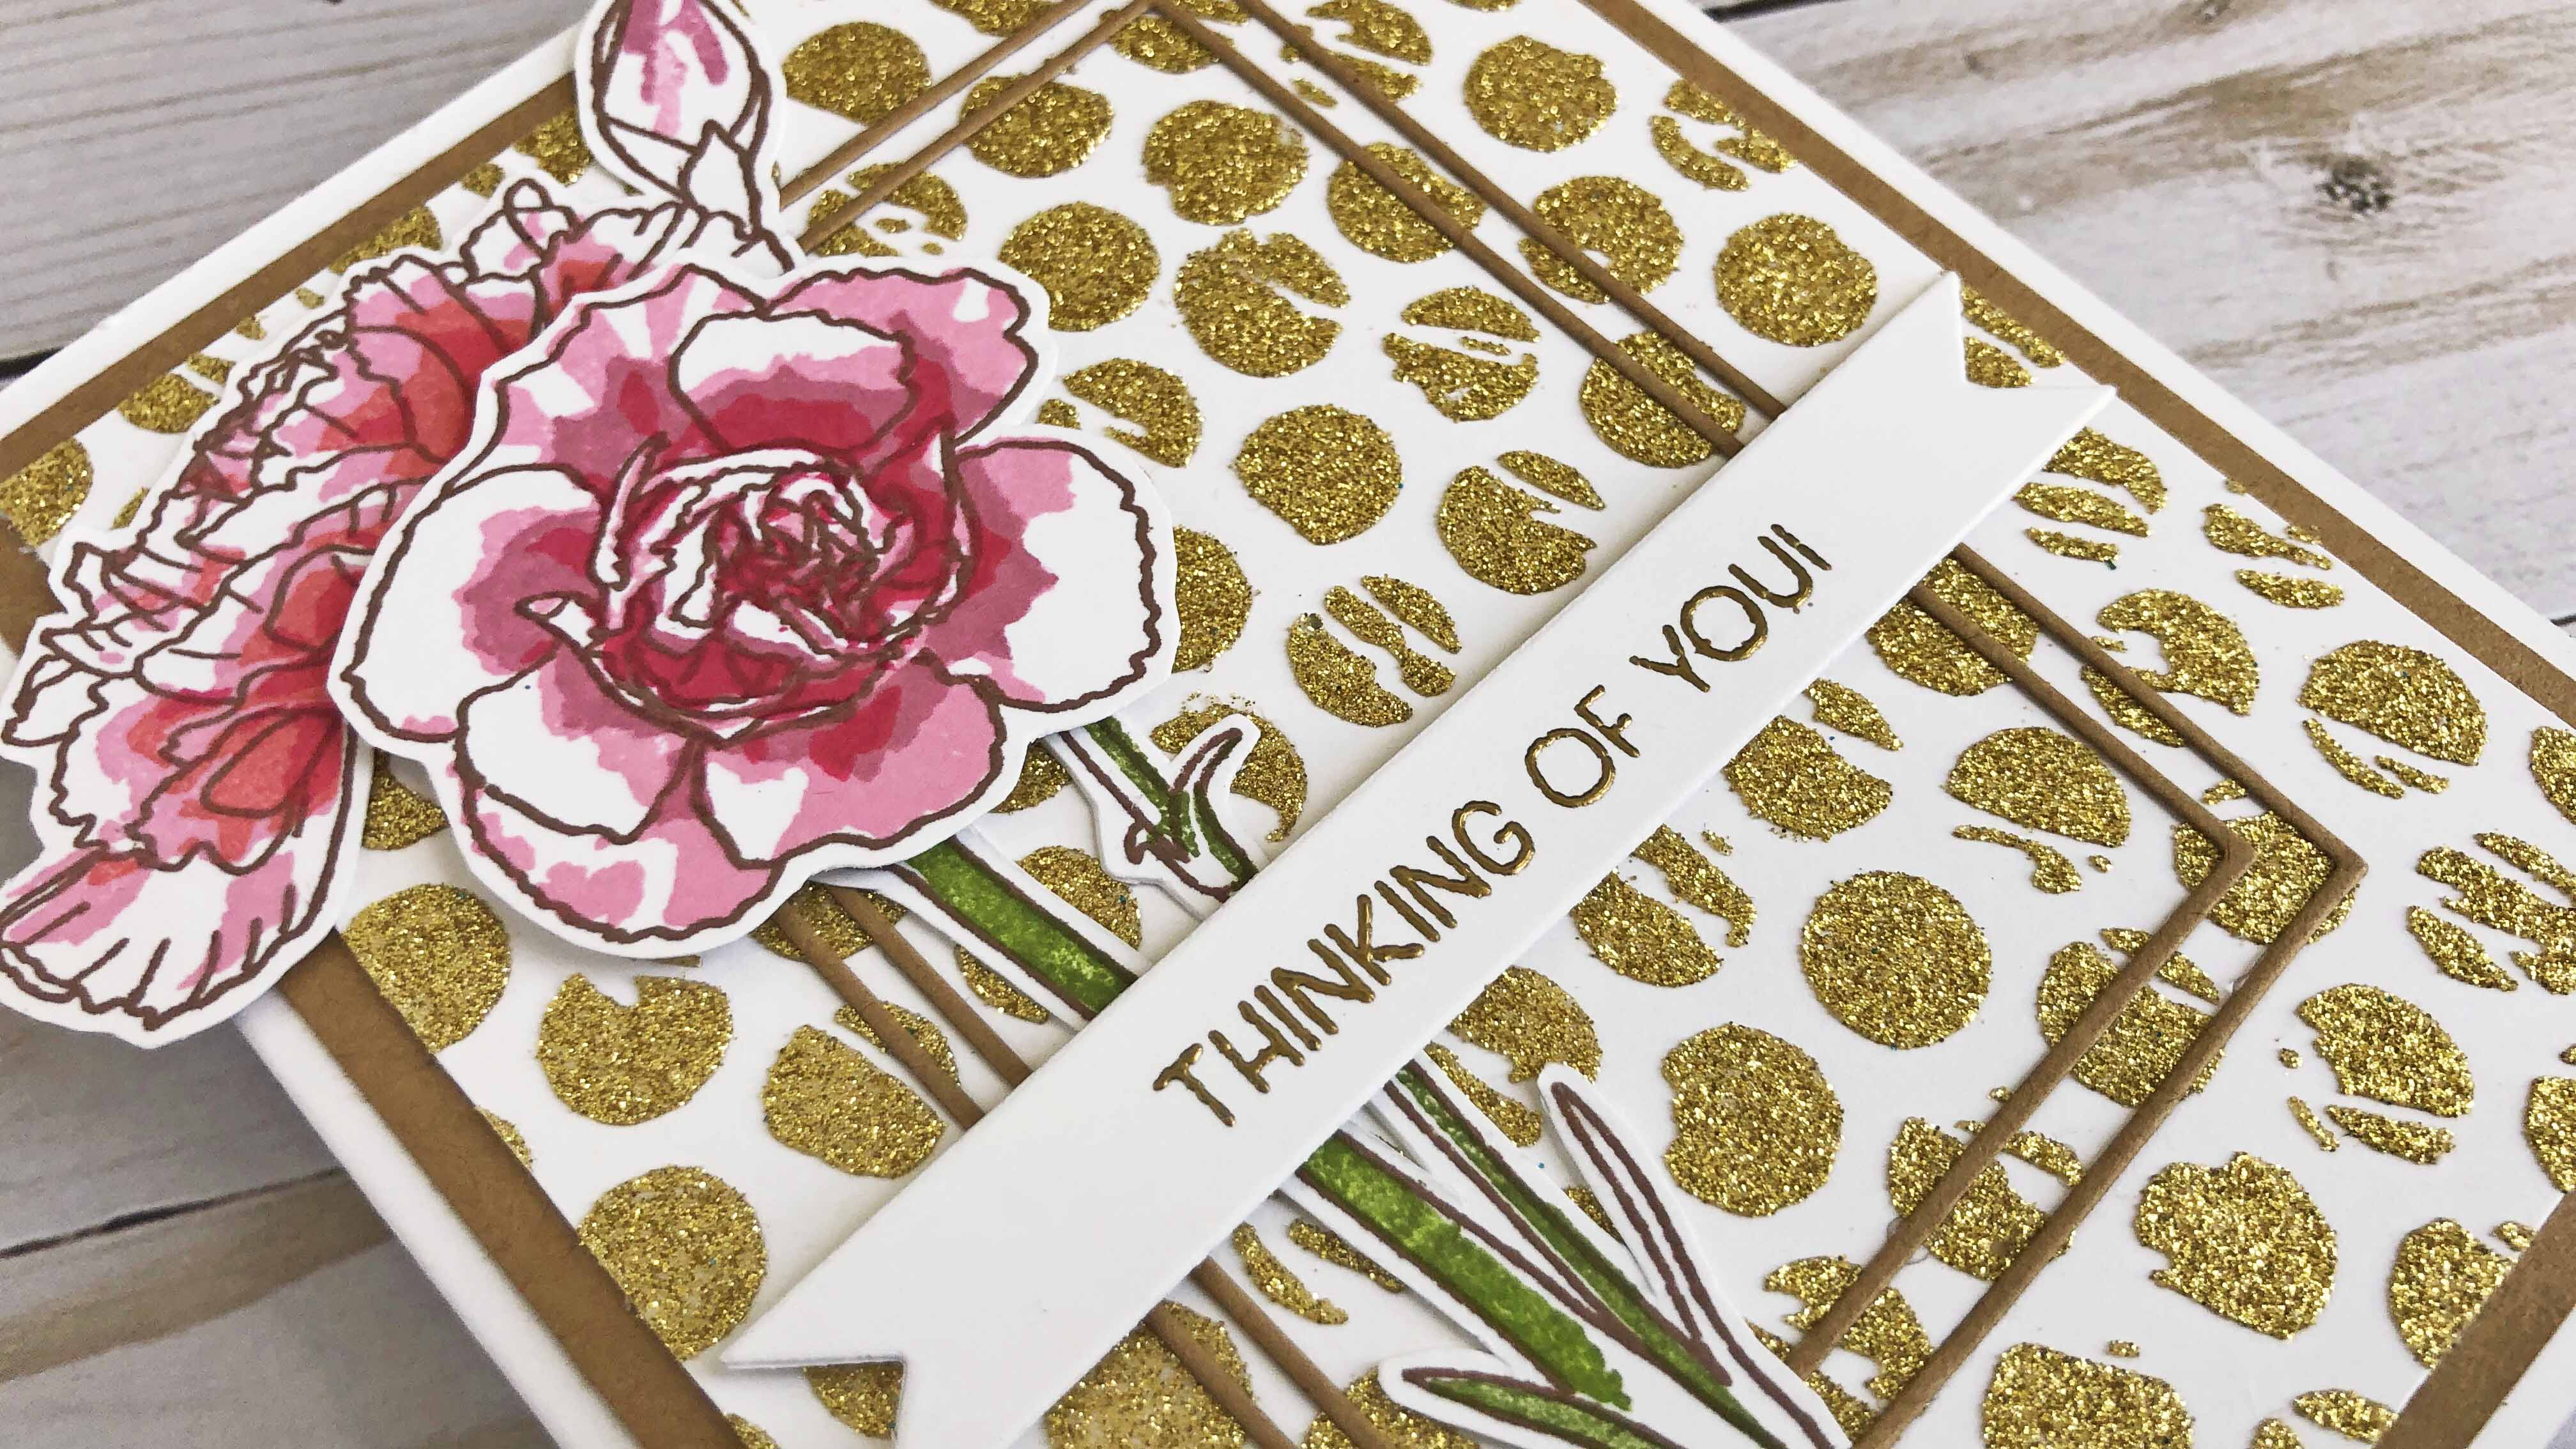 Hot Foil Gel with Heidi Swapp Glitter Transfer Sheets (Gold). A velvety finish!!